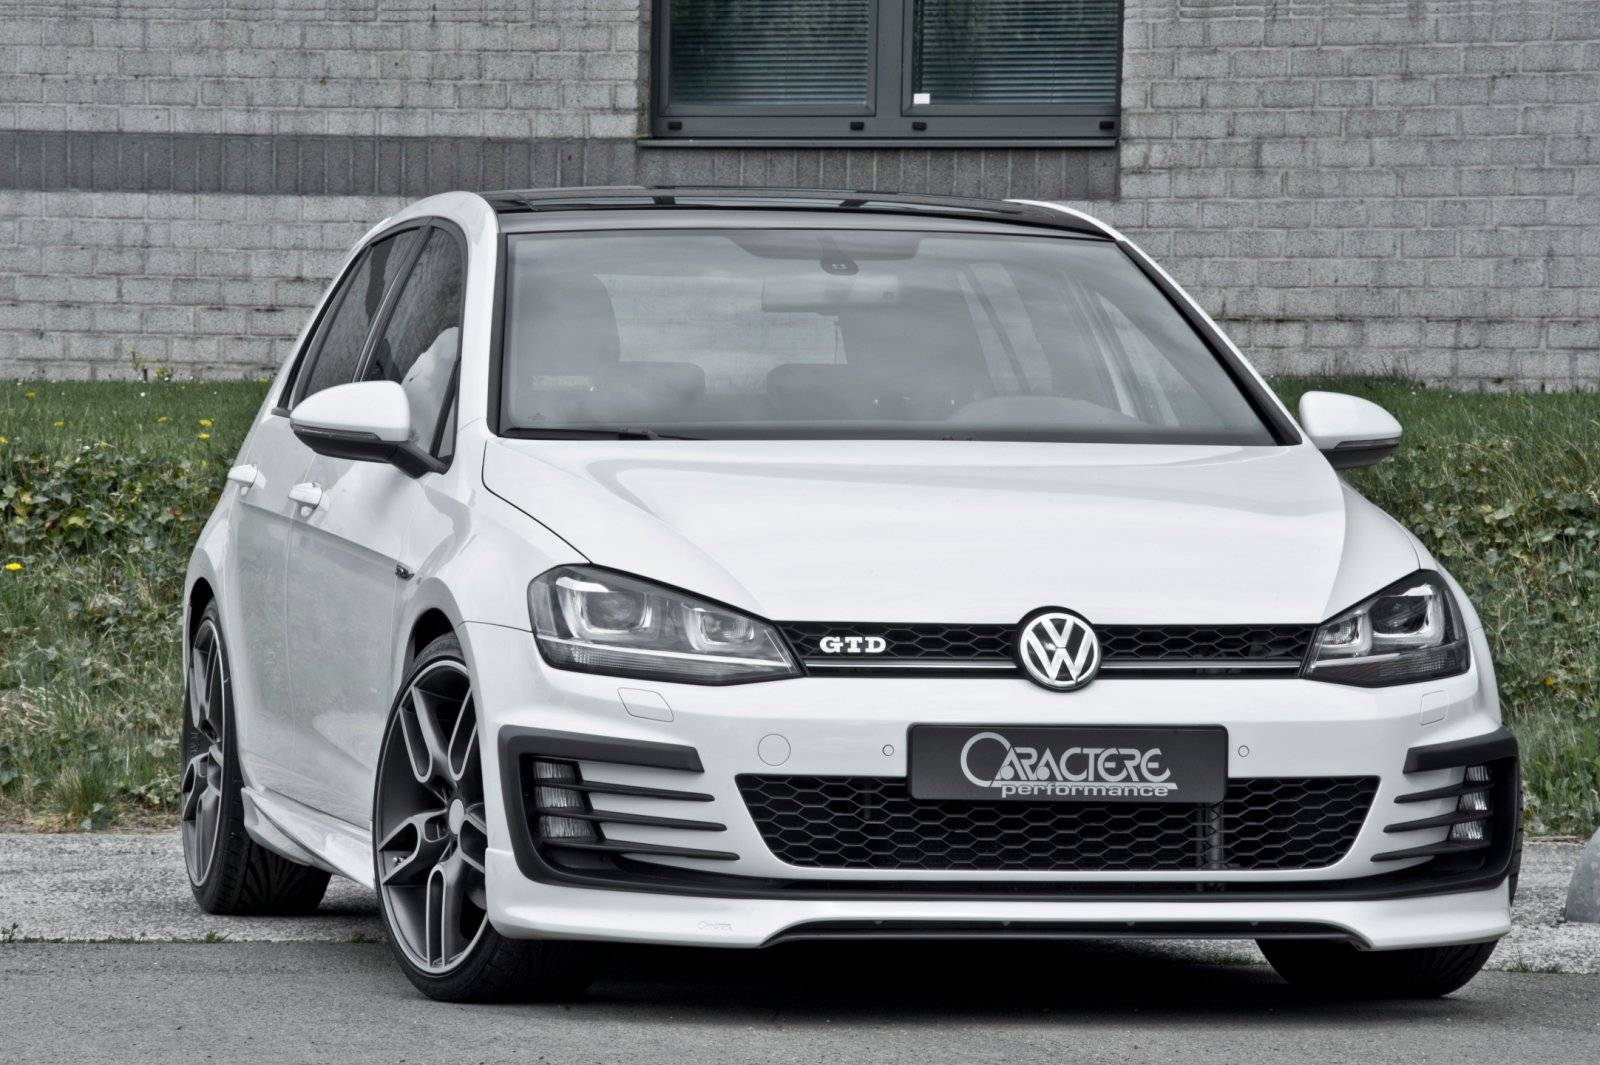 volkswagen golf 7 gti gtd fotogalleries. Black Bedroom Furniture Sets. Home Design Ideas